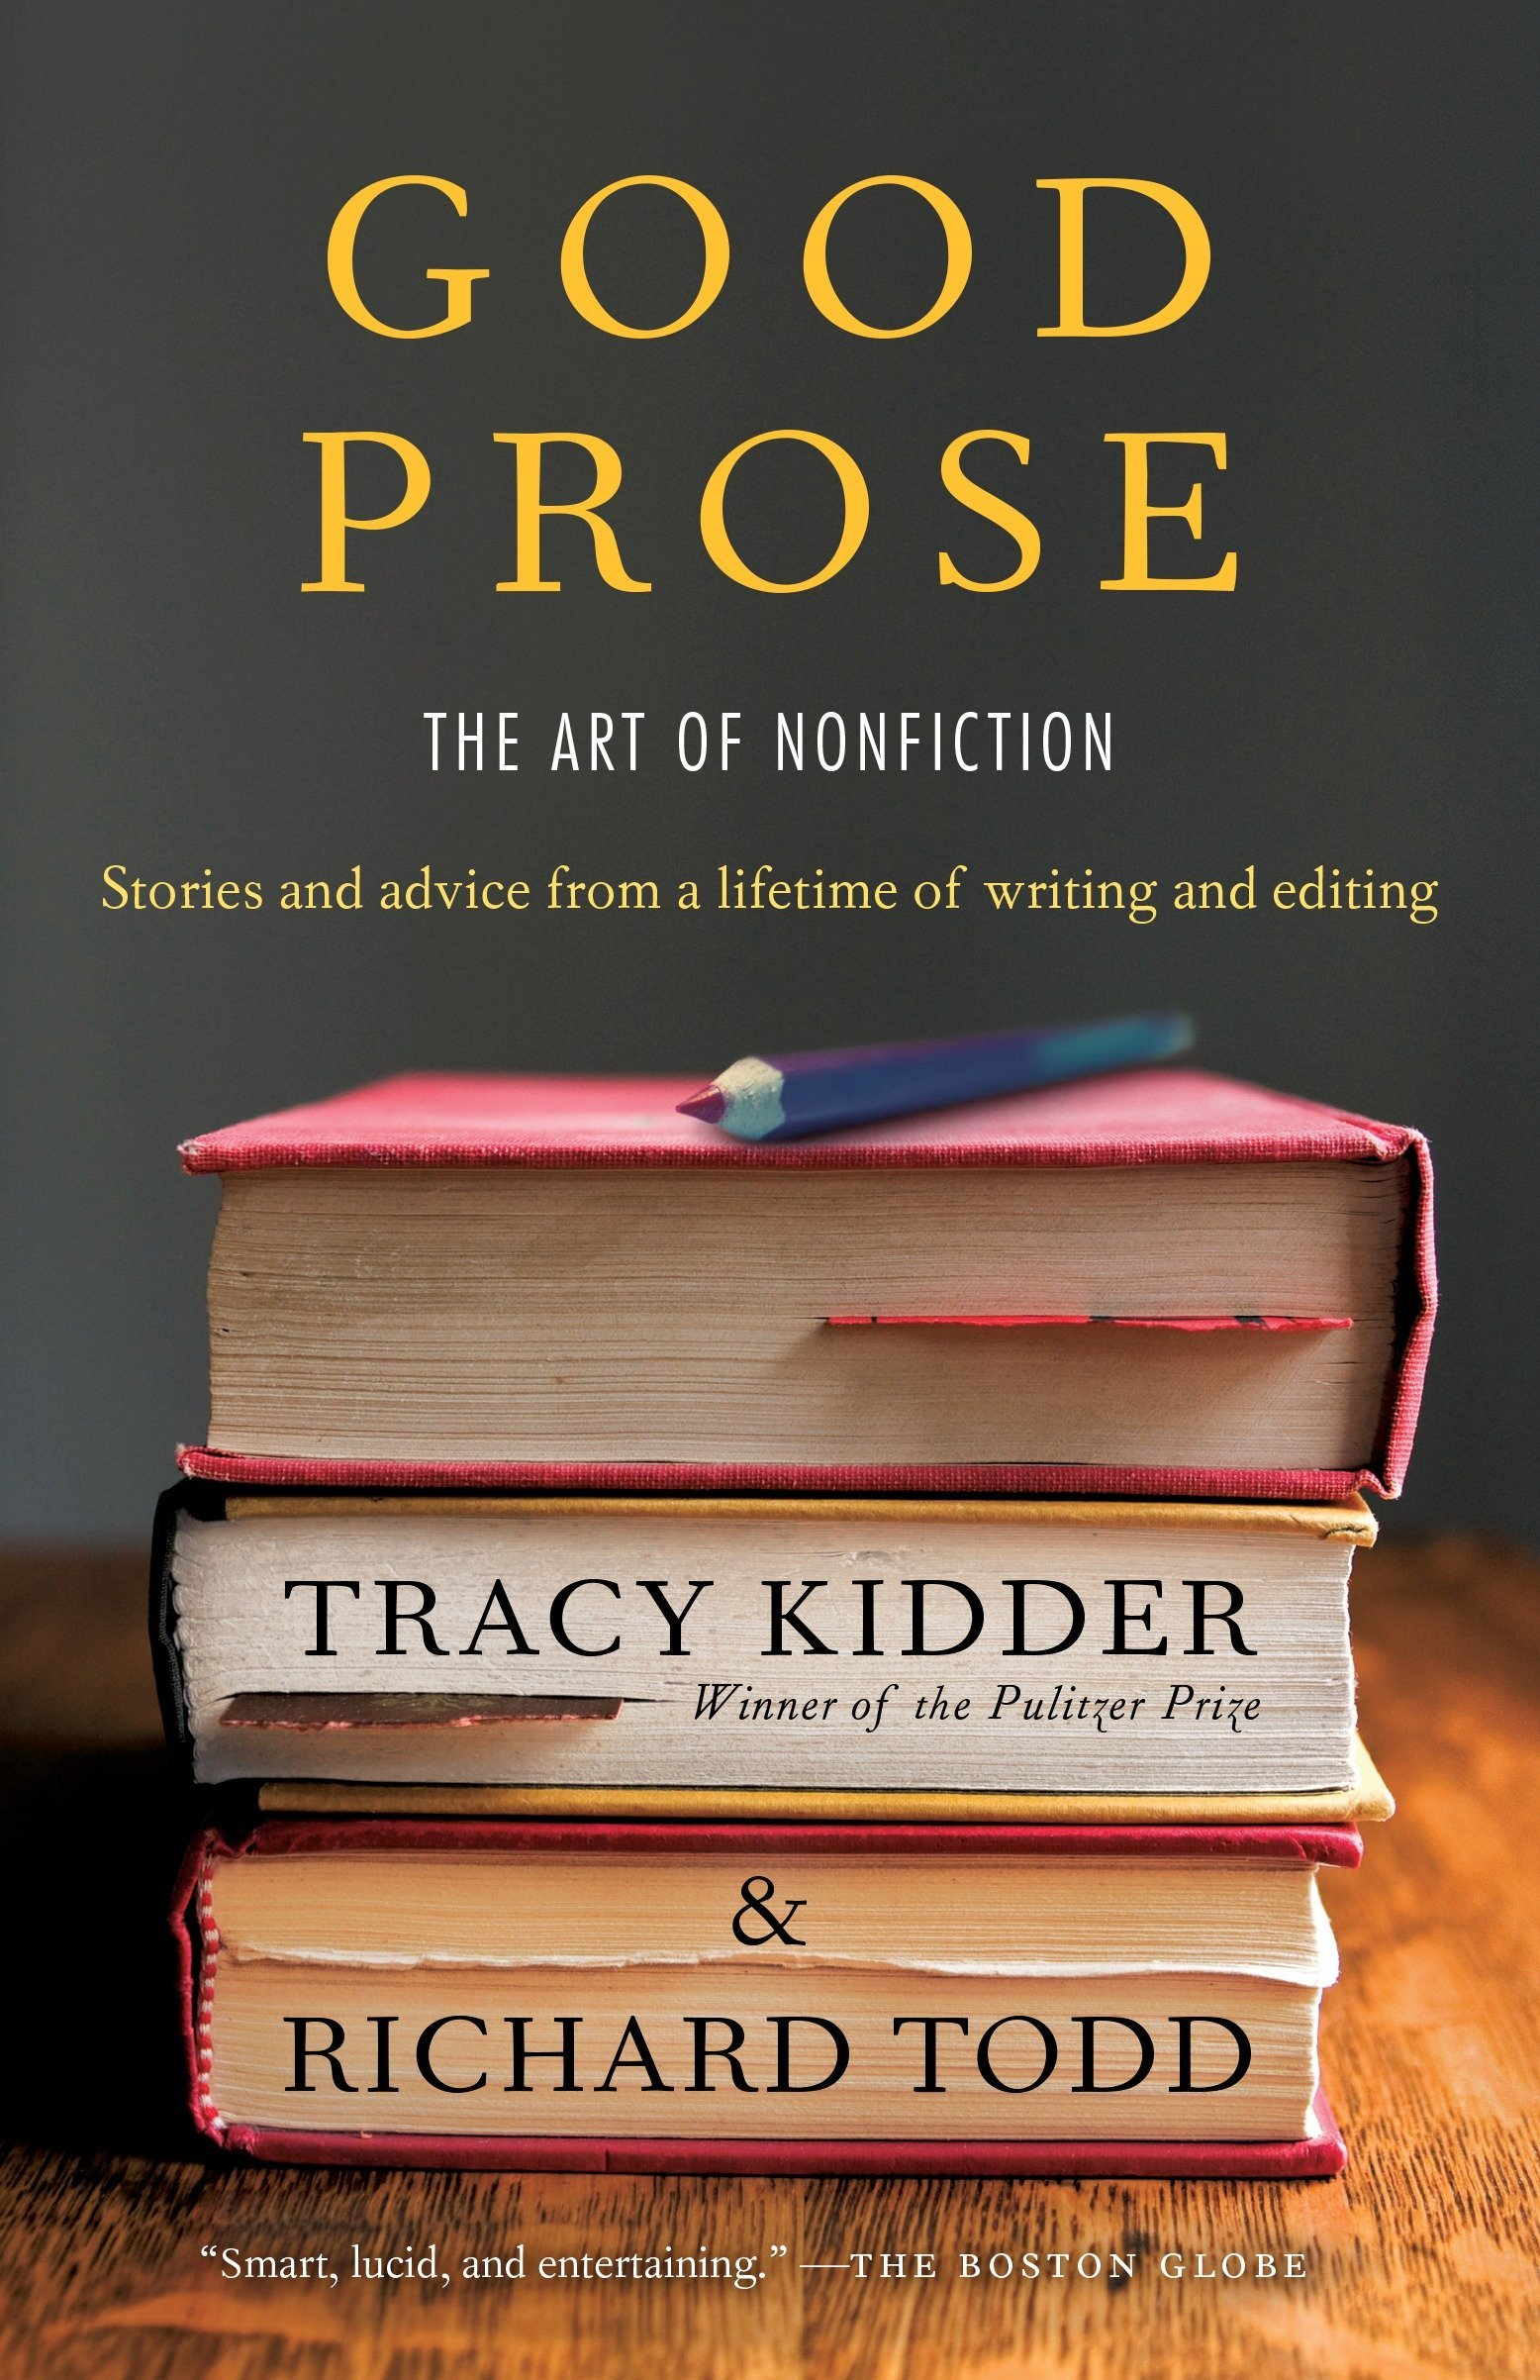 Image result for good prose by tracy kidder and richard todd